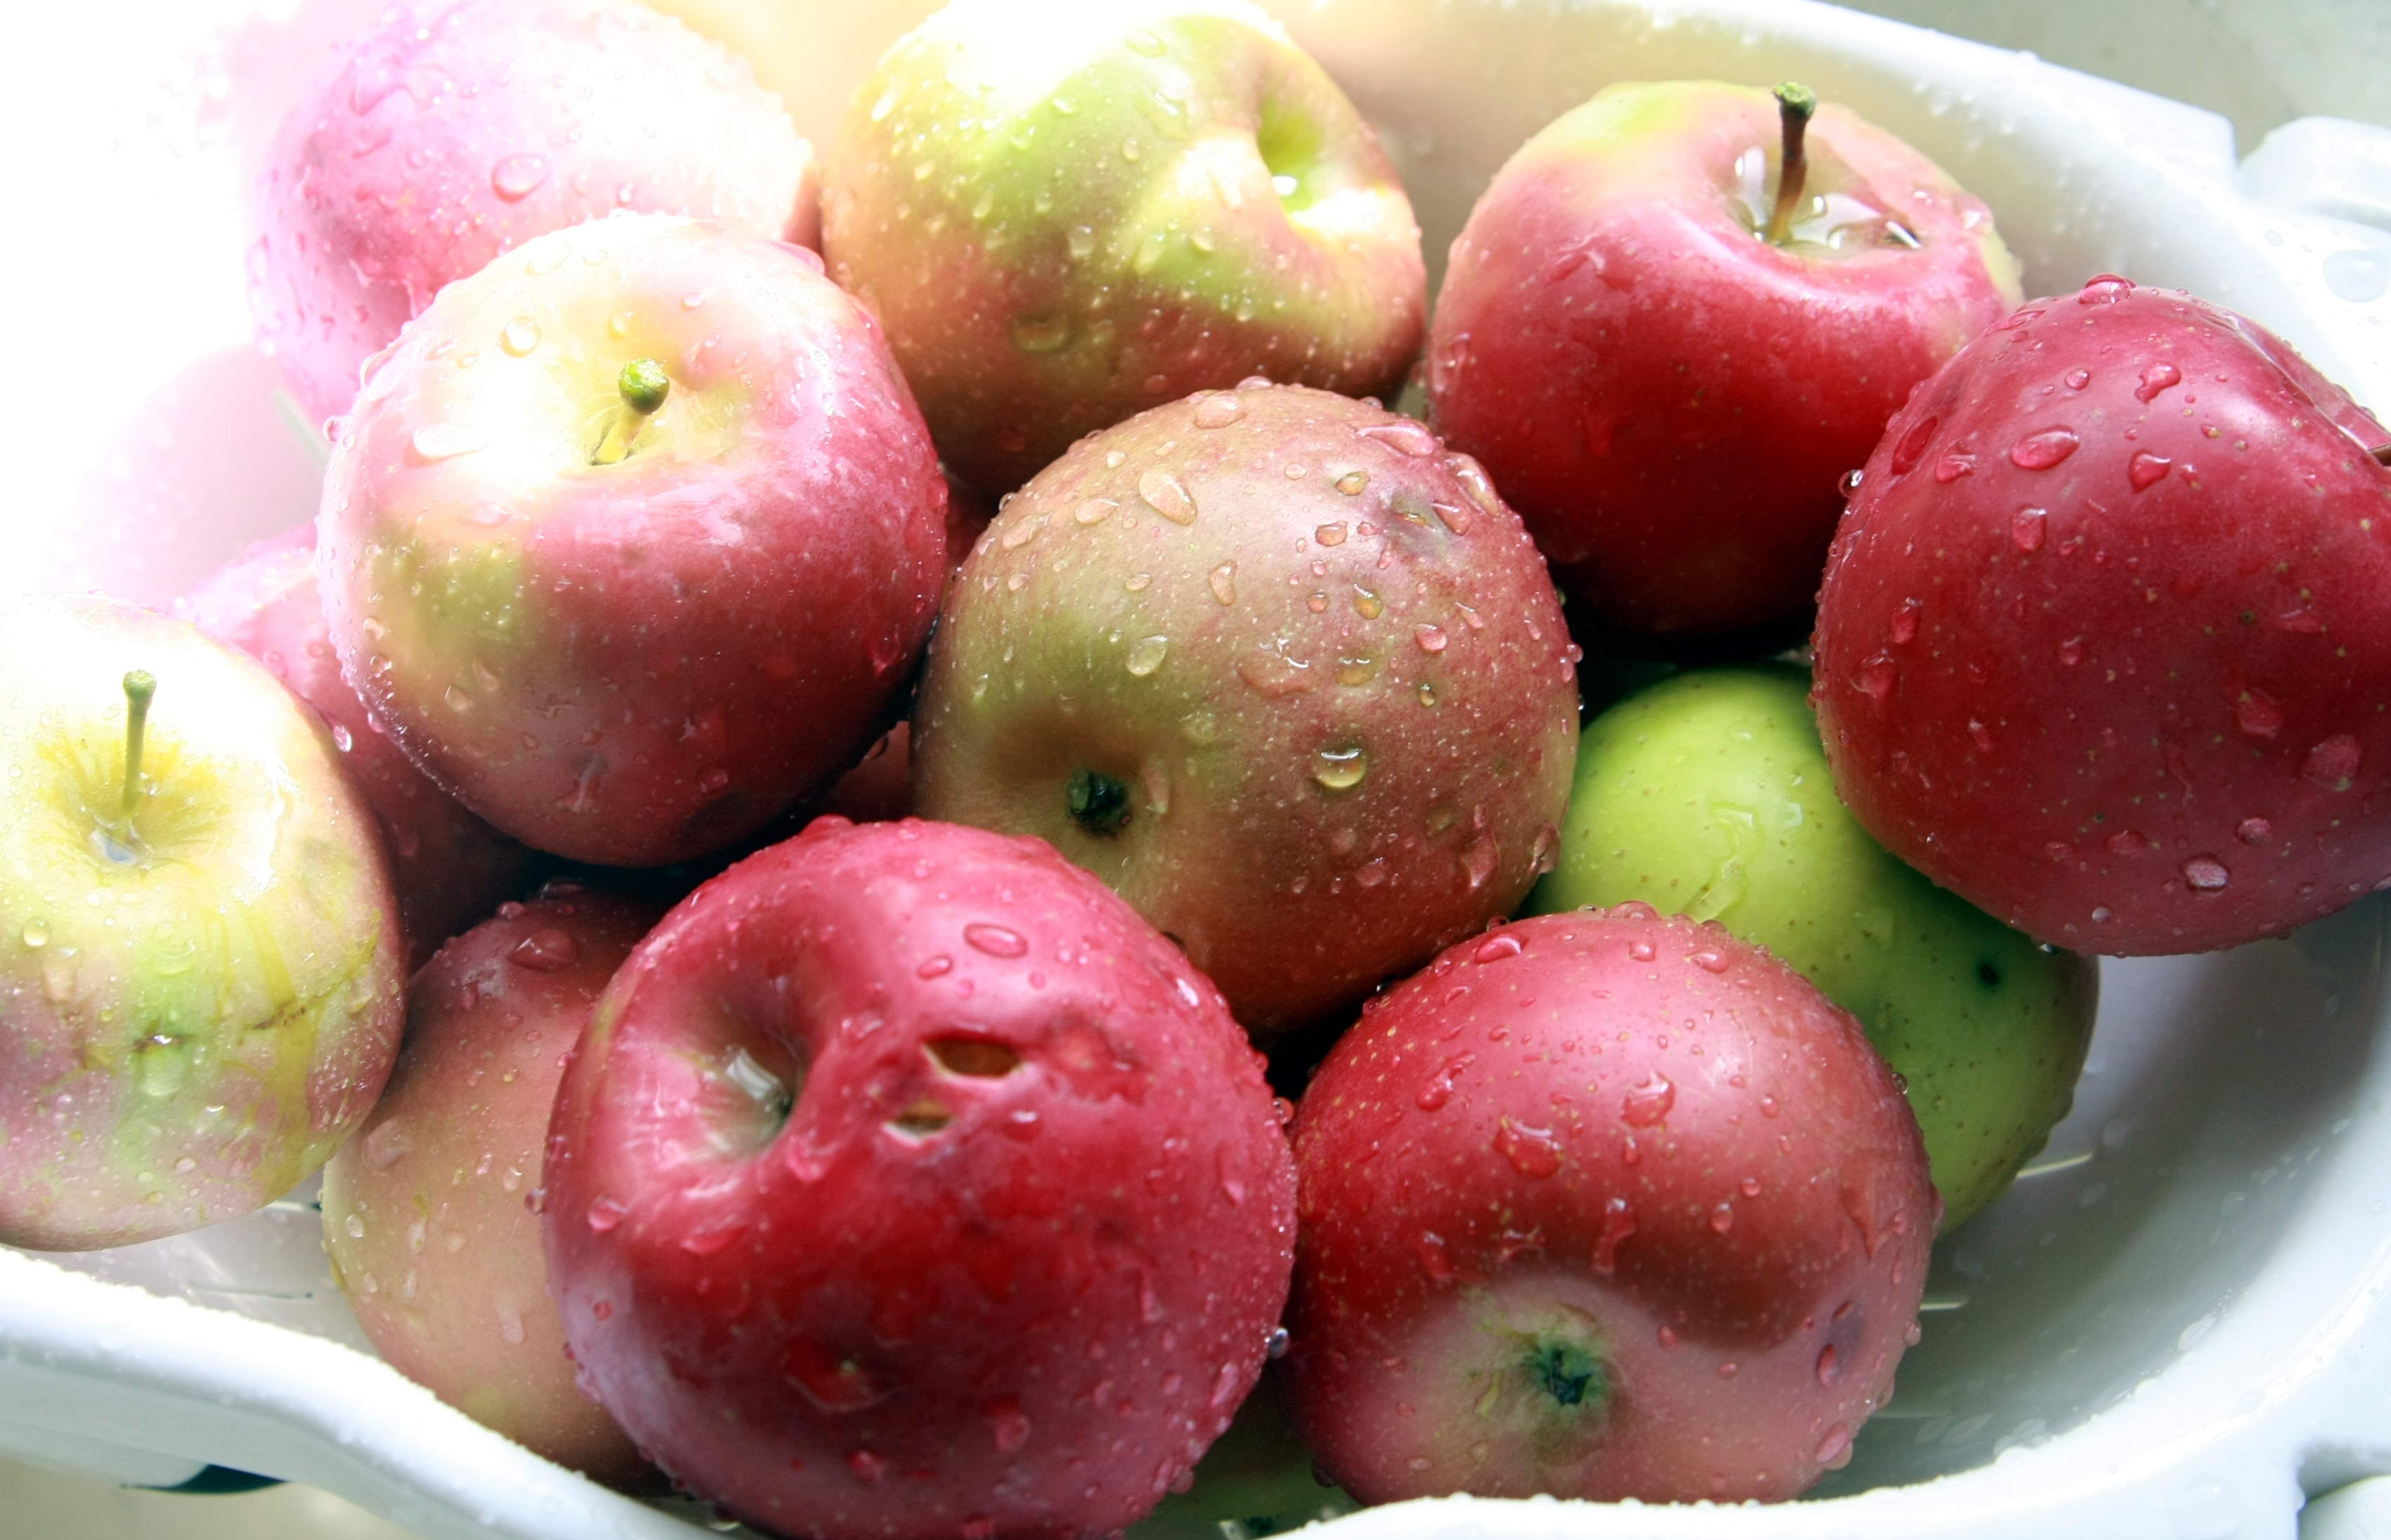 fresh, washed apples